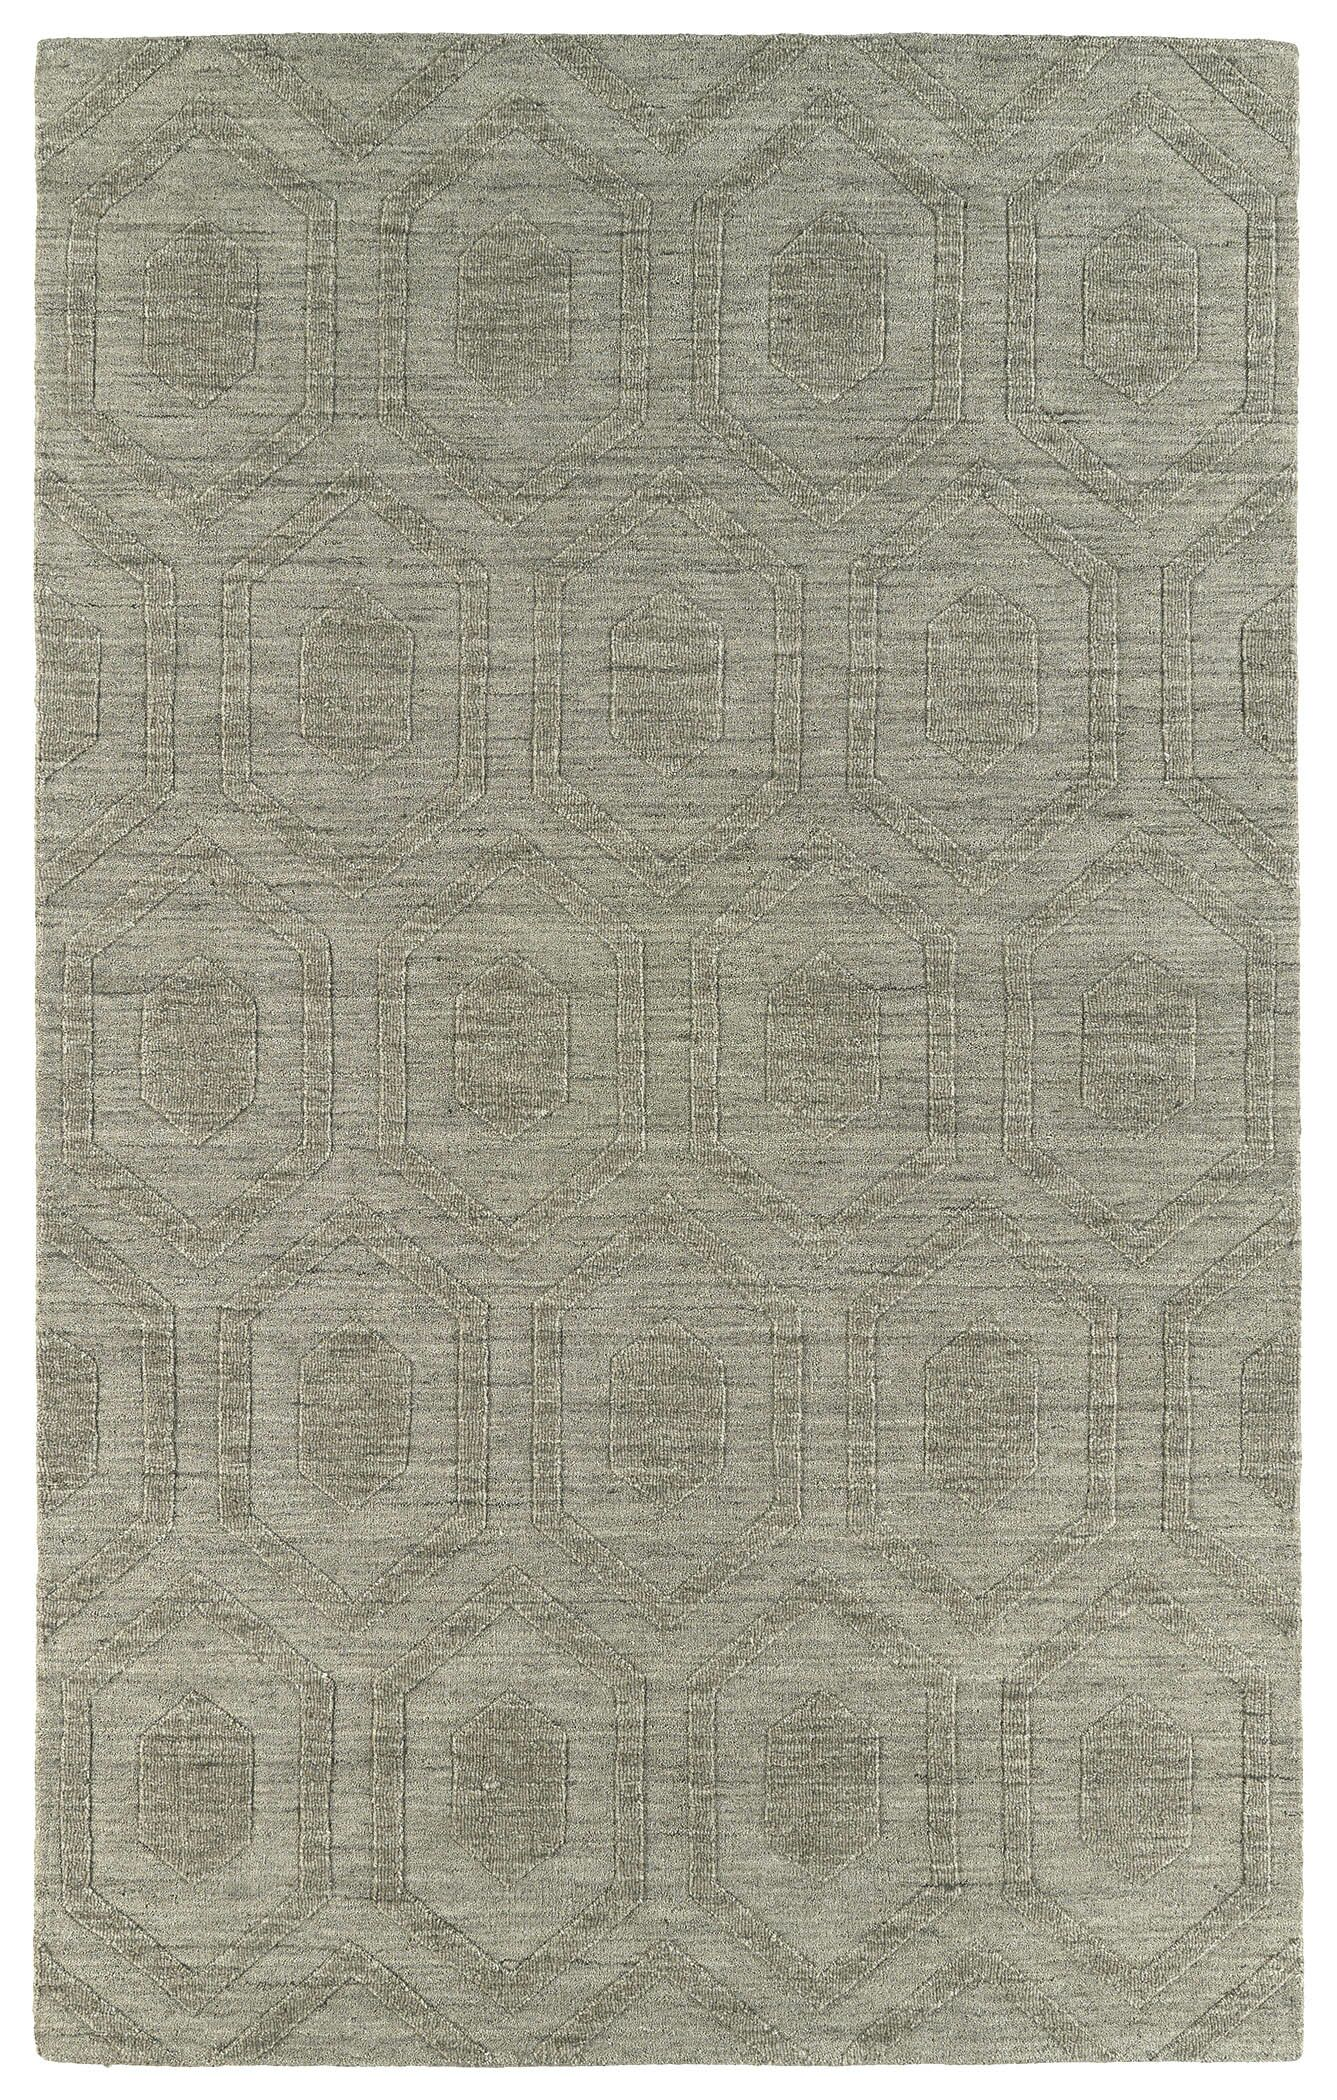 Dobson Light Brown Geometric Area Rug Rug Size: Rectangle 9'6